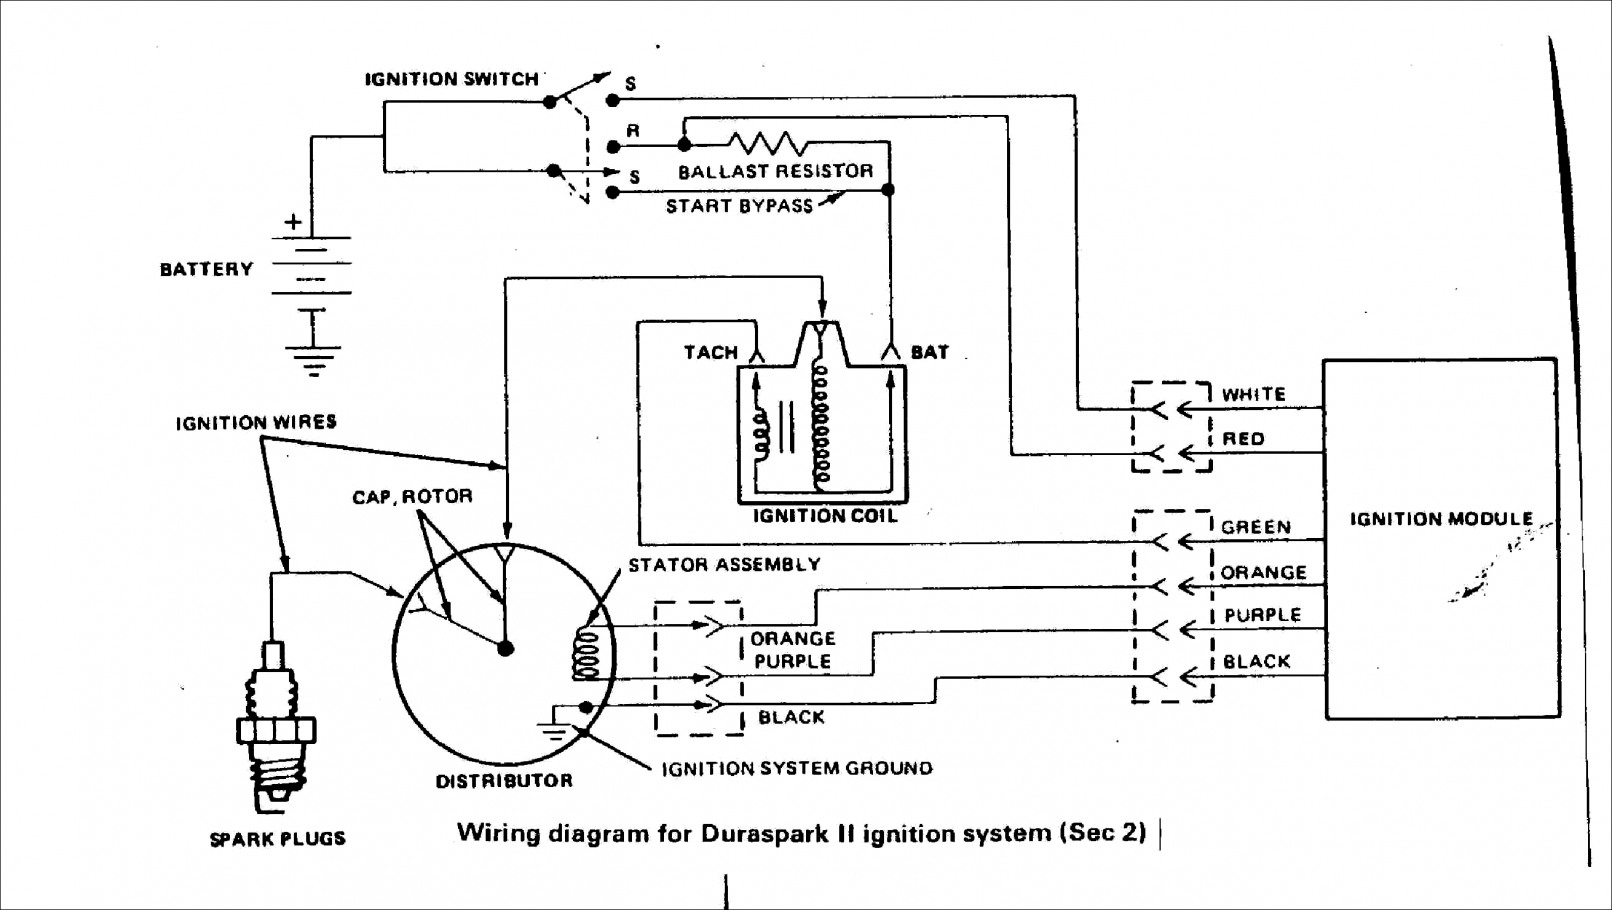 Collection Of 3 Position Toggle Switch Wiring Diagram Micro Library - 3 Position Ignition Switch Wiring Diagram